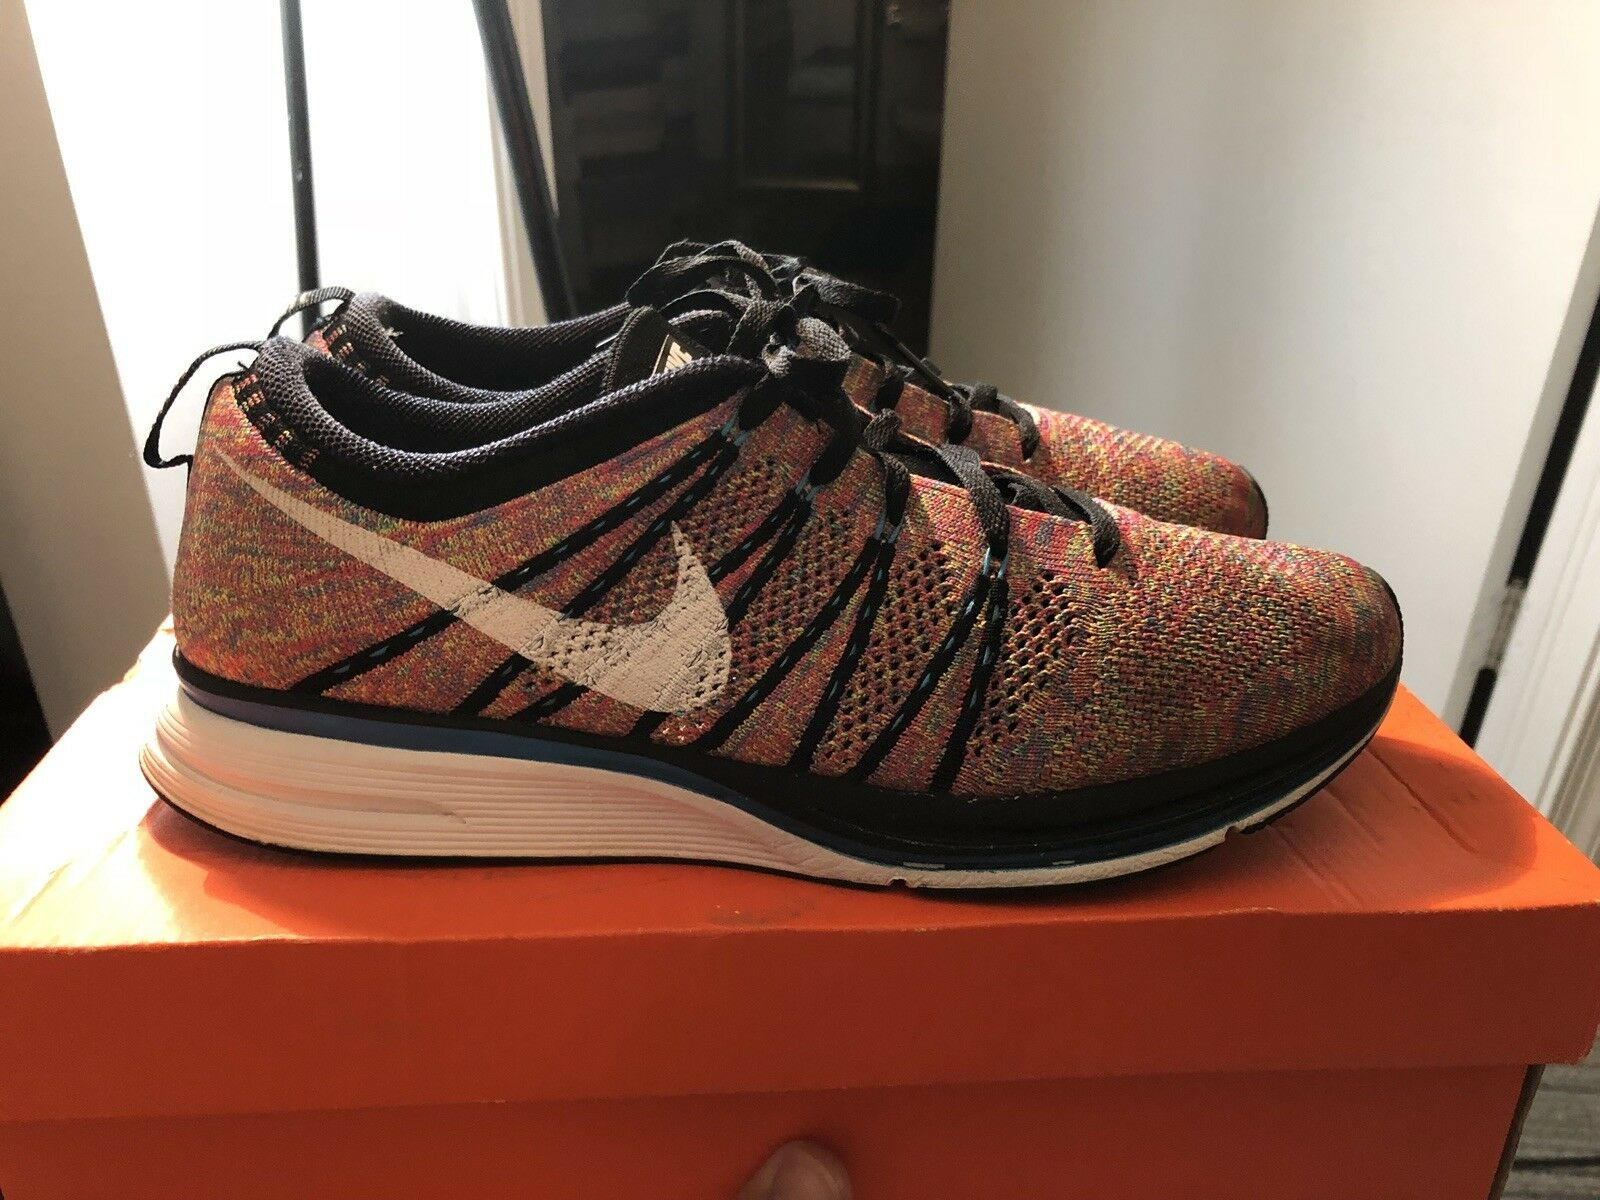 Nike Flynit Trainer Multicolor Size 9.5  with original box